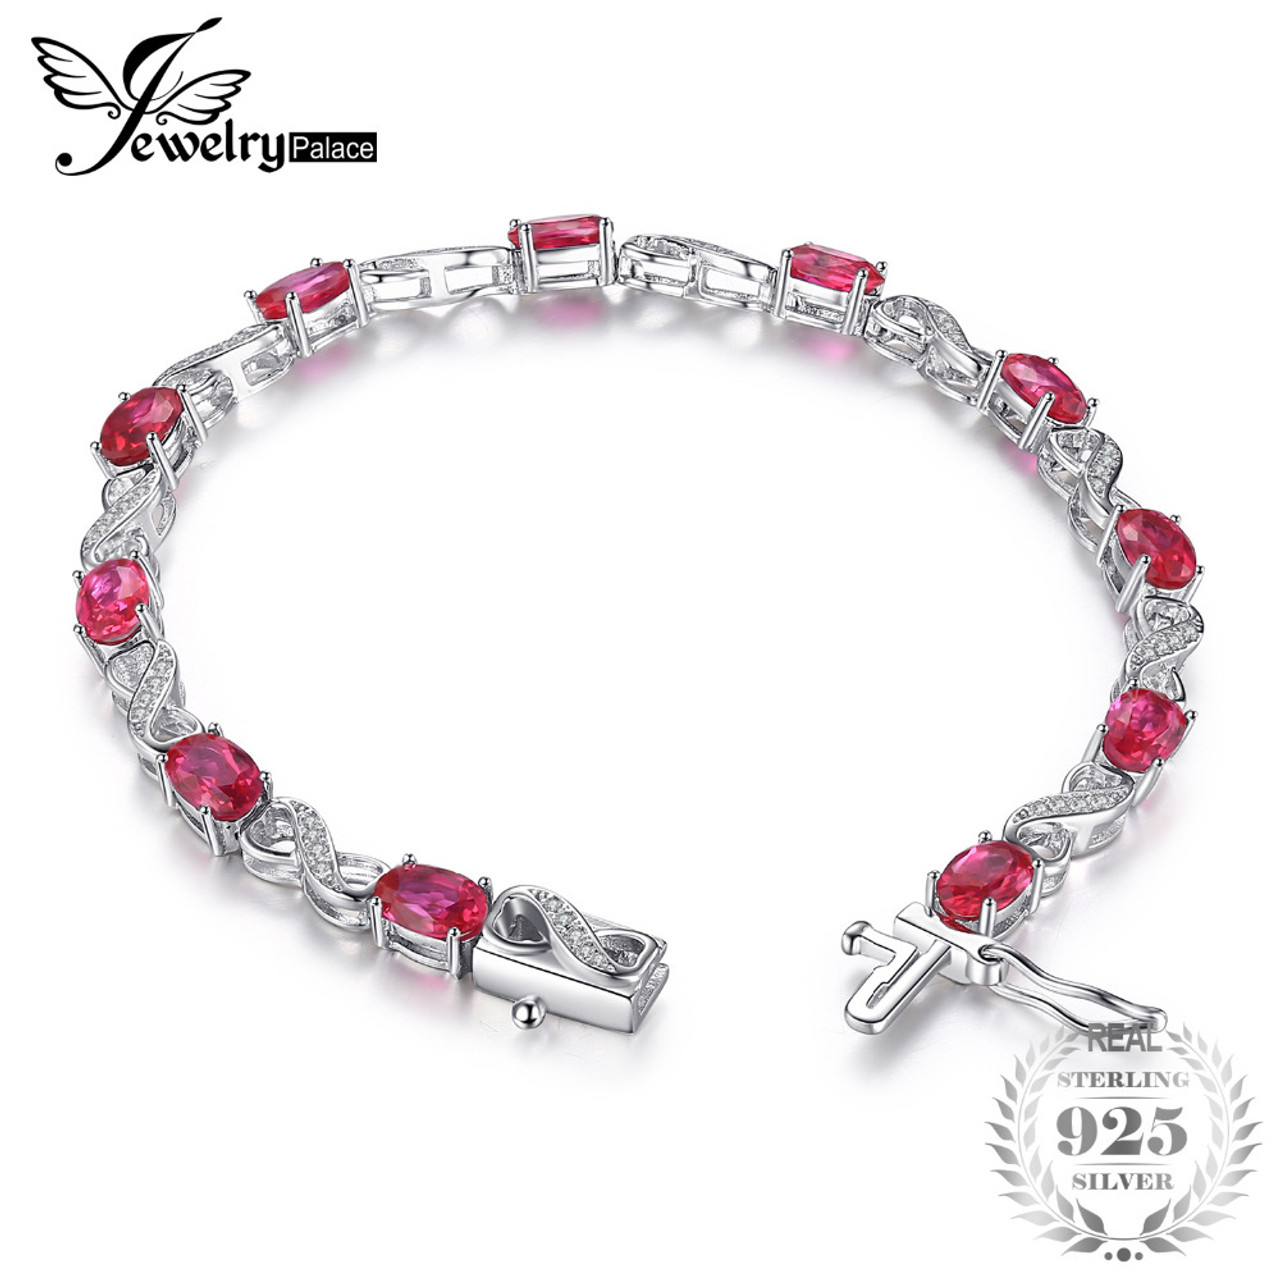 e6af41f9e JewelryPalace Love Infinity 6.8ct Oval Created Ruby Tennis Bracelet 925  Sterling Silver Fashion Wedding Jewelry ...